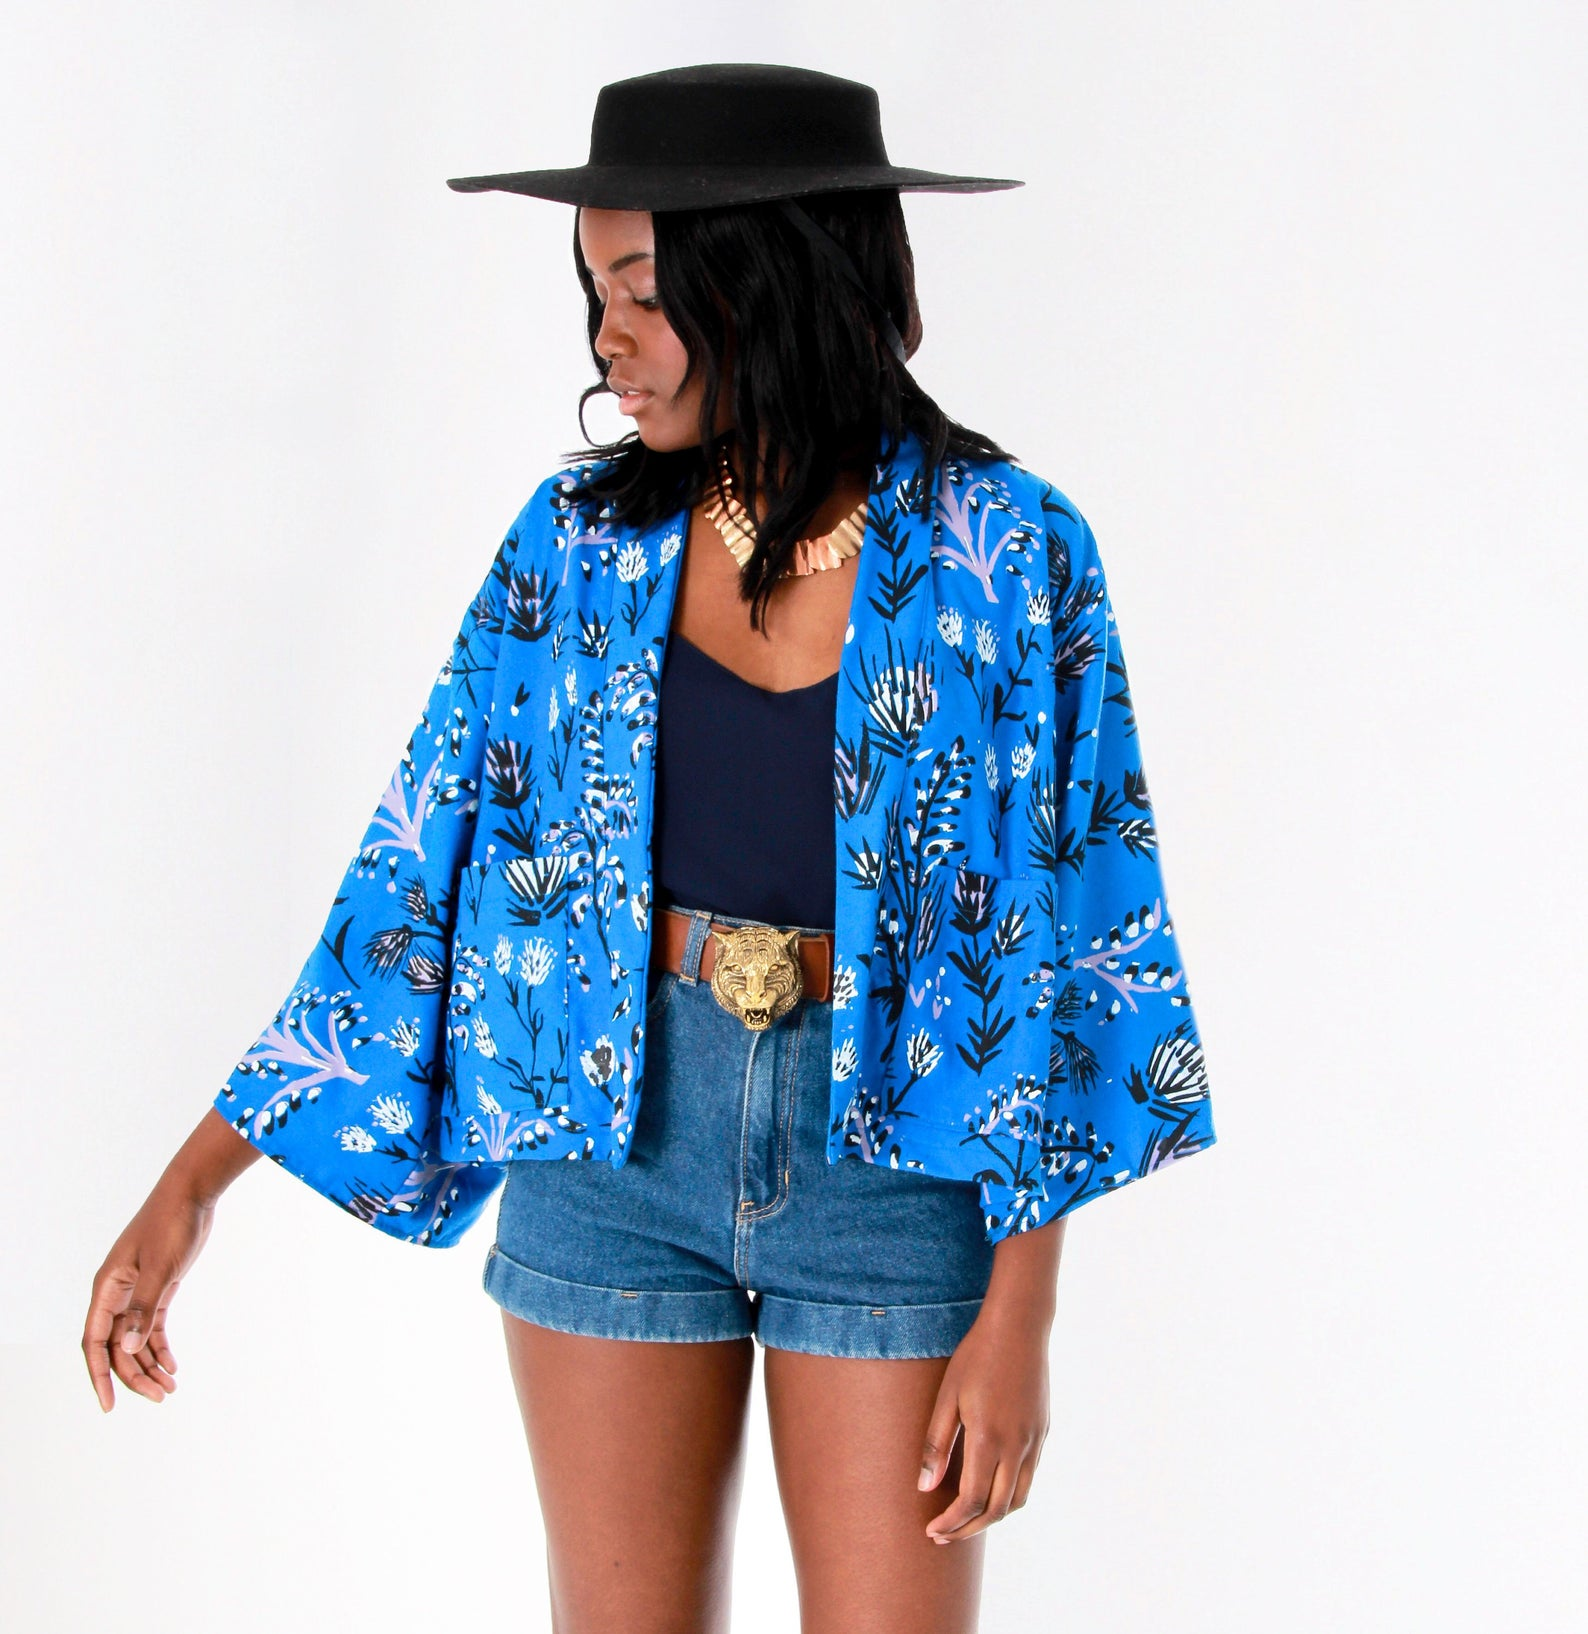 Boxy Jacket 'Thistle' Print in Blue By Thief and Bandit